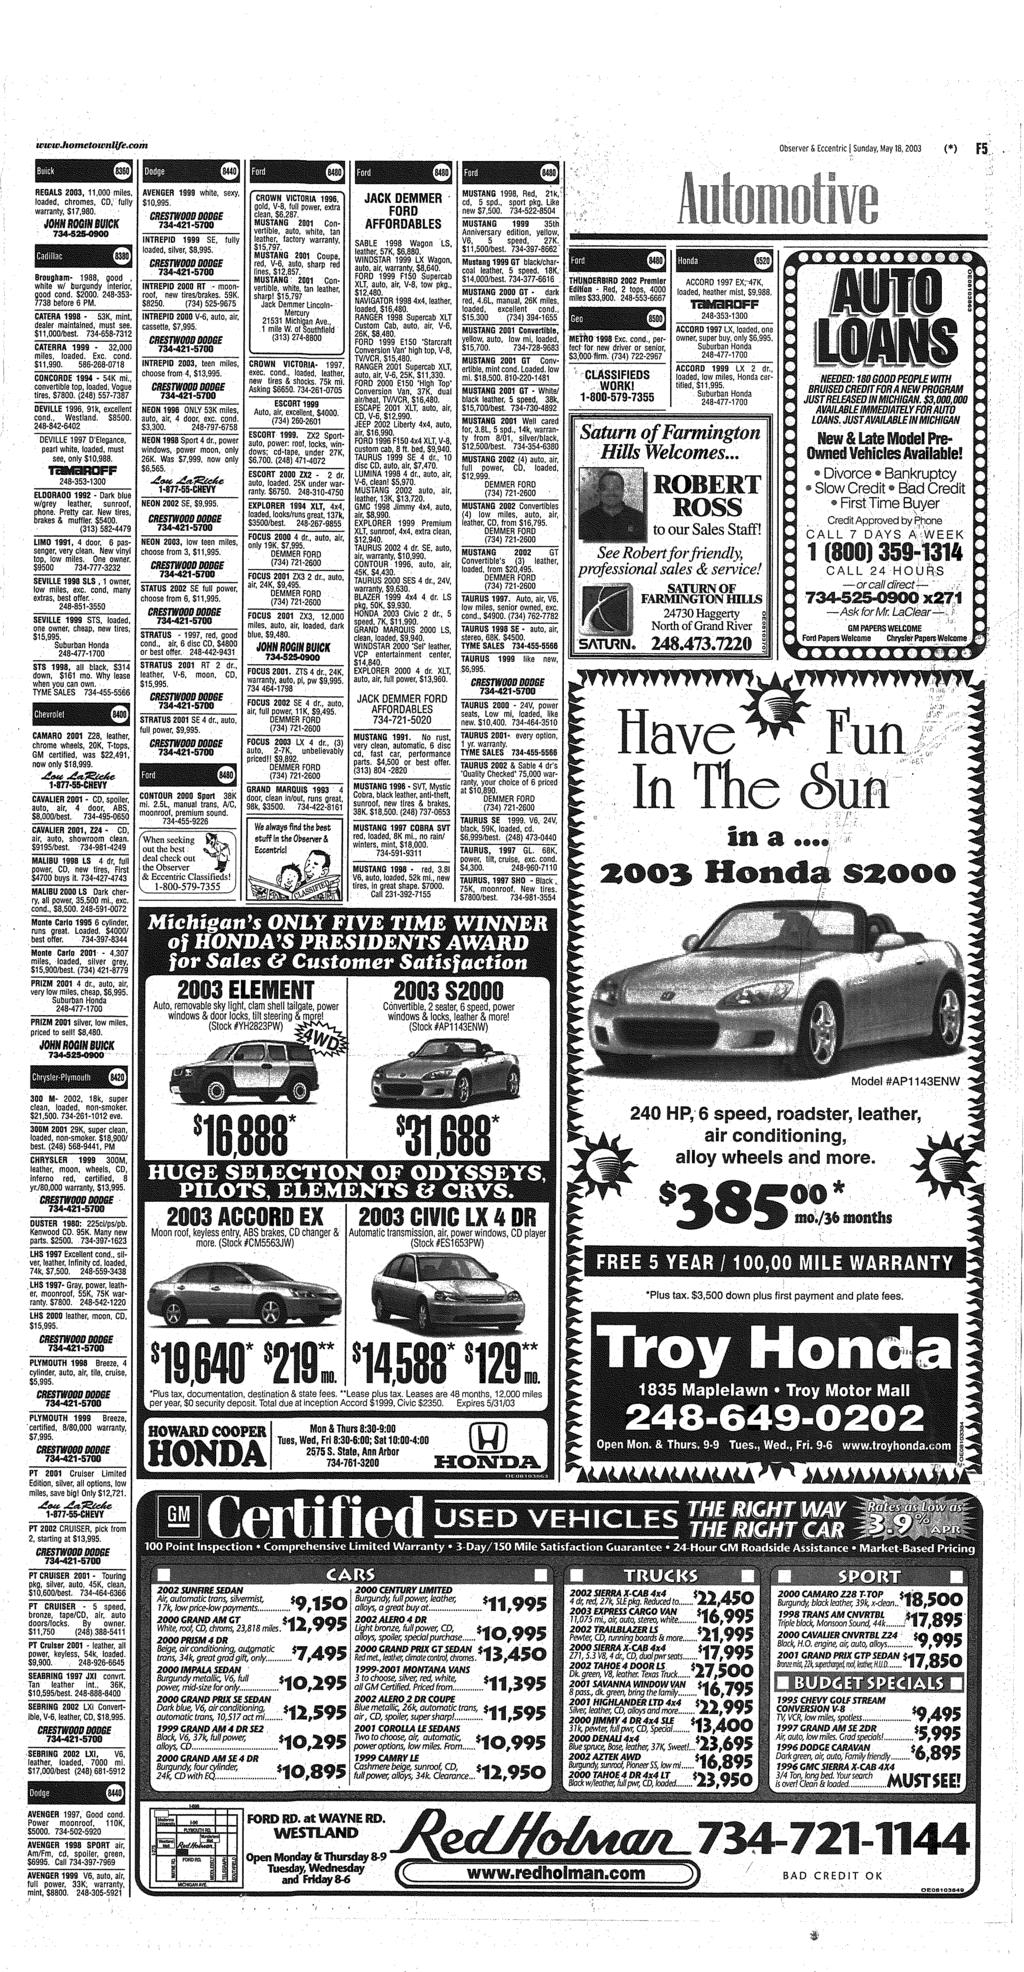 Rvices Building Expenses Mount Local News A2 Canton Pdf Piston Master Rem Honda Accord 90 93 At Mt